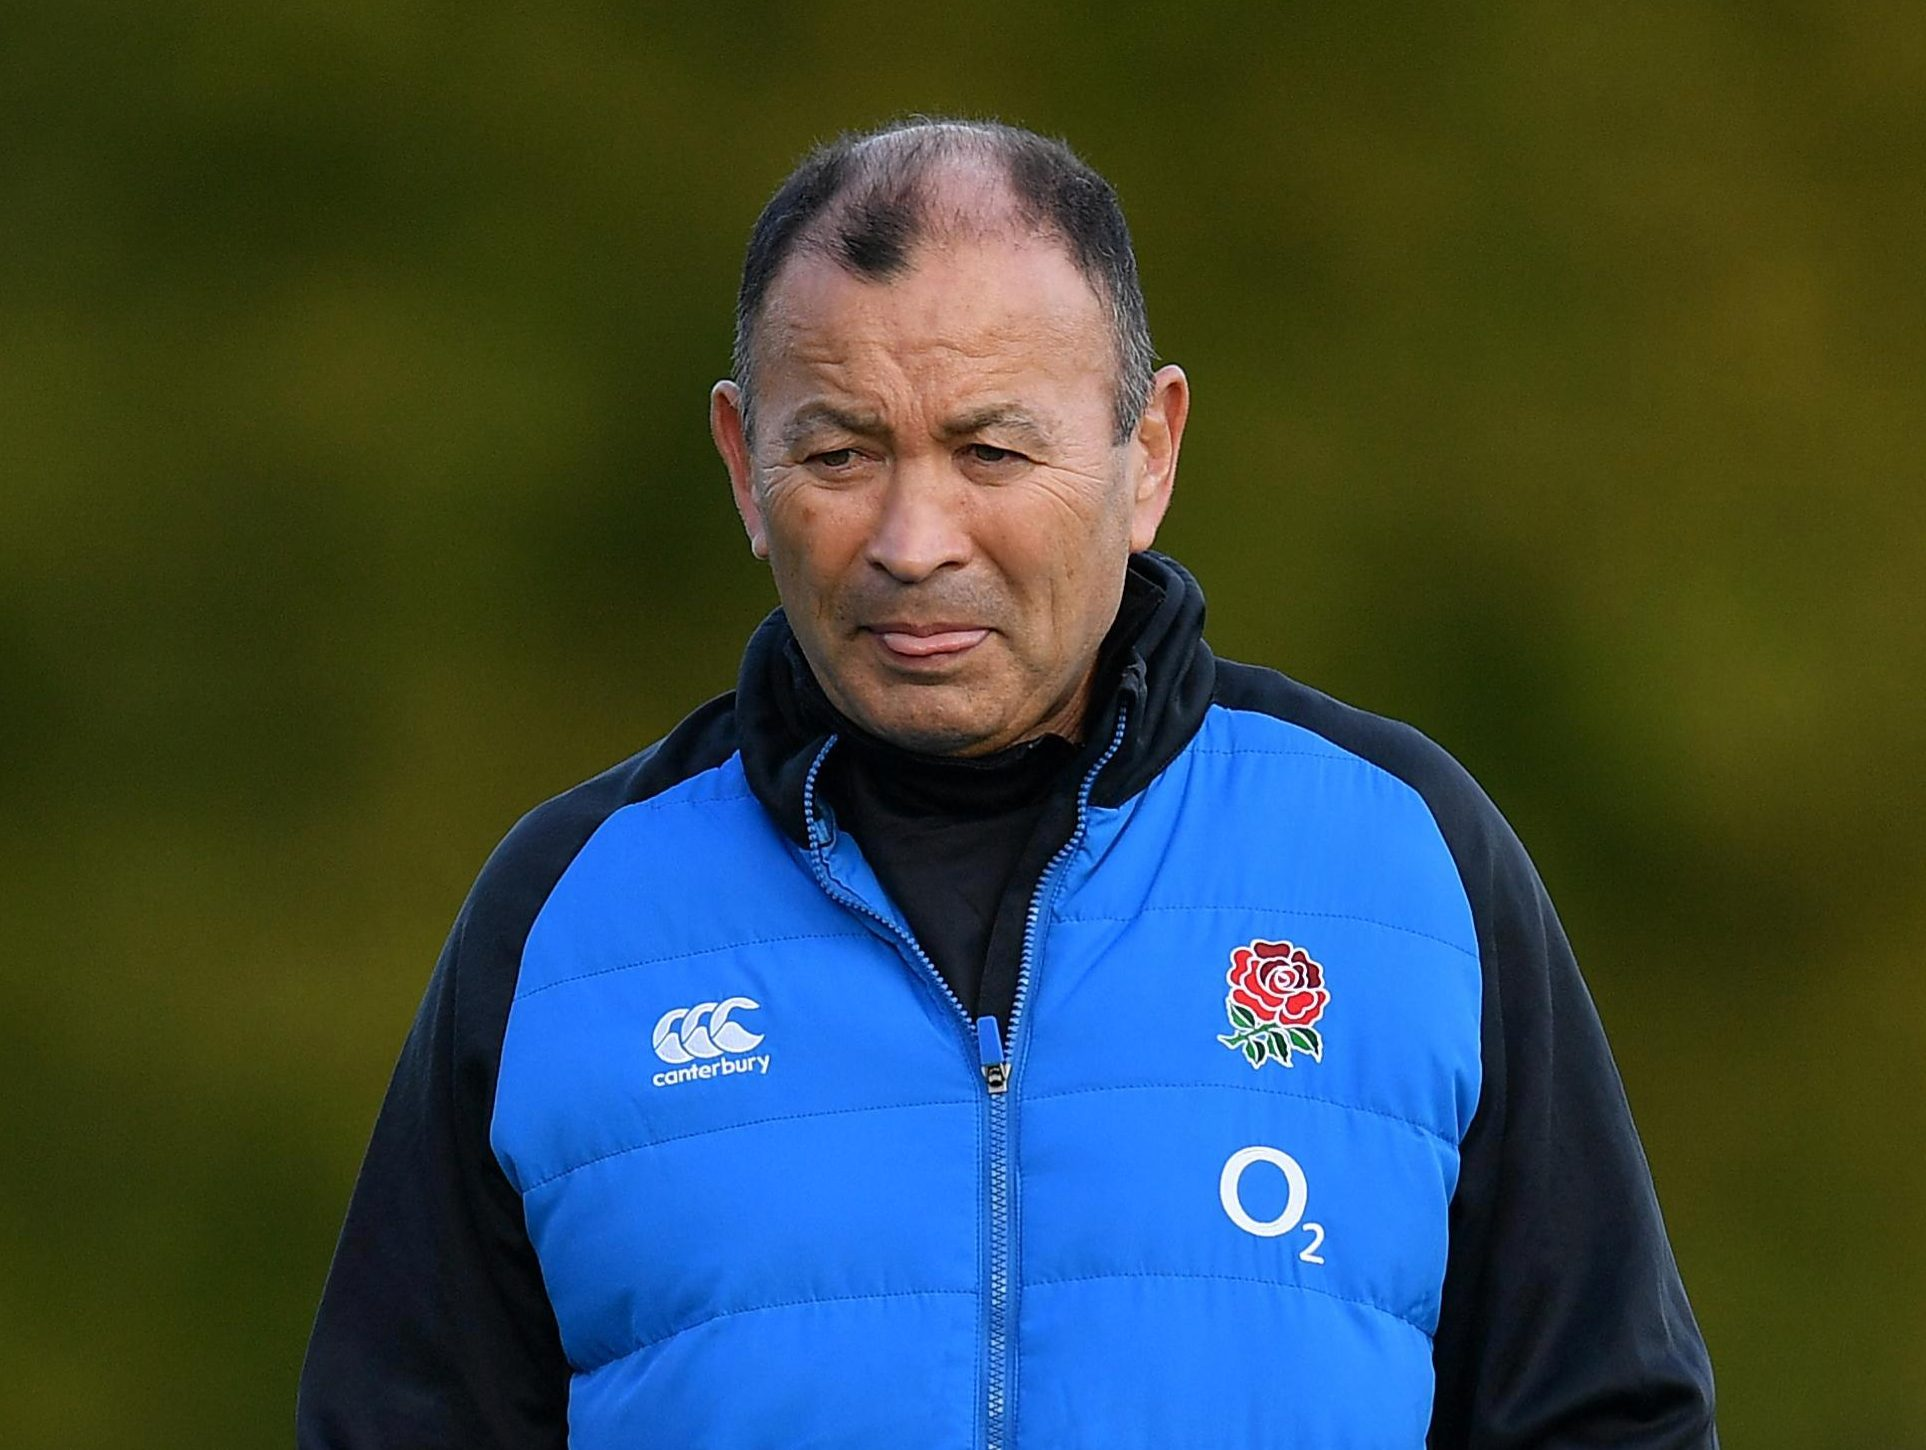 It leaves Eddie Jones with a potential selection headache ahead of the matches against South Africa, New Zealand, Australia and Japan